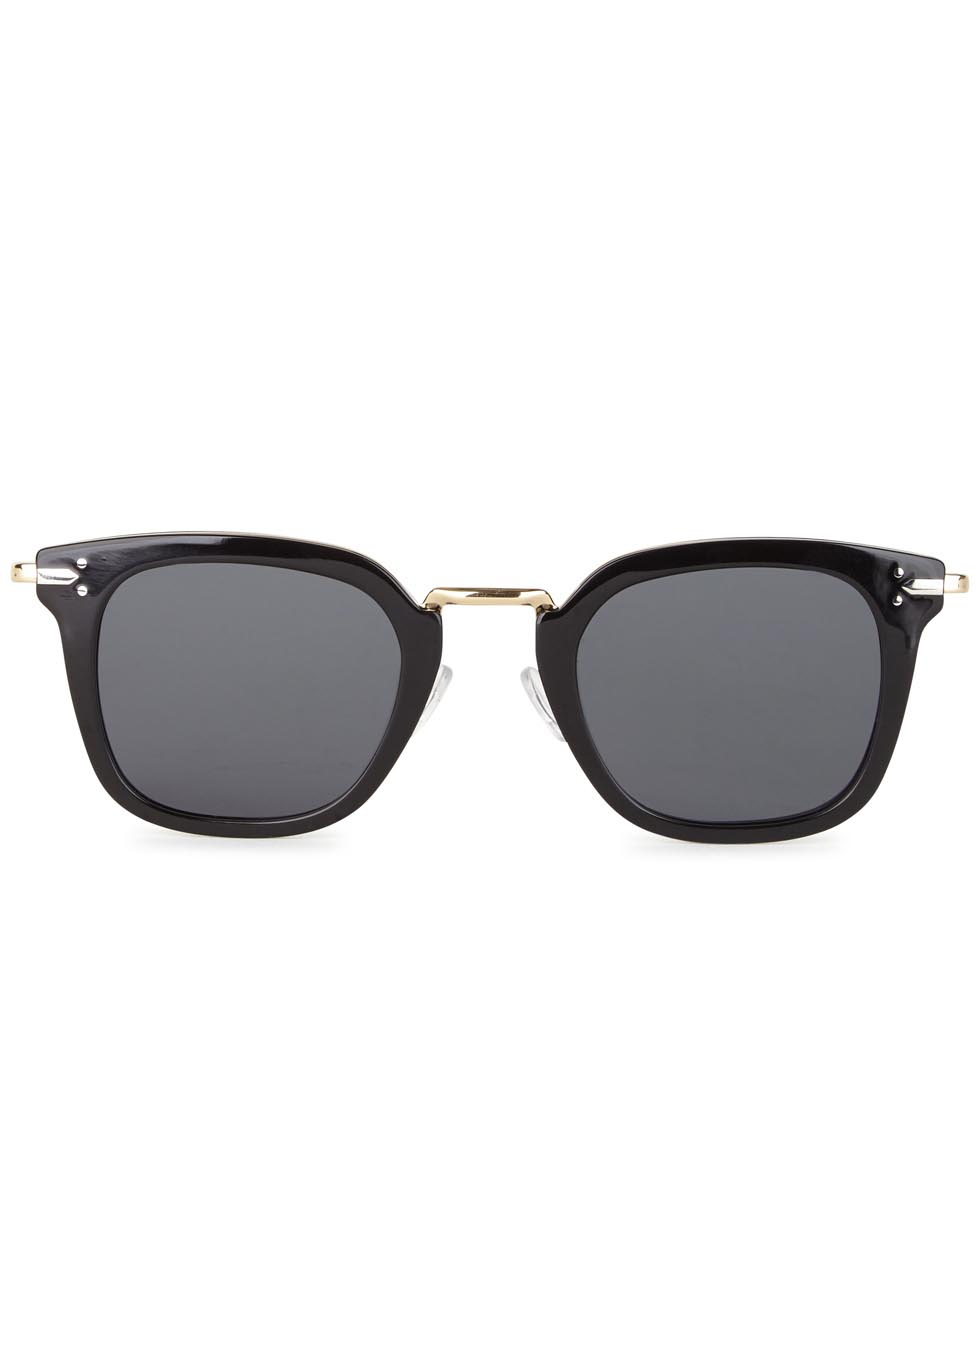 Vic black clubmaster-style sunglasses - Celine